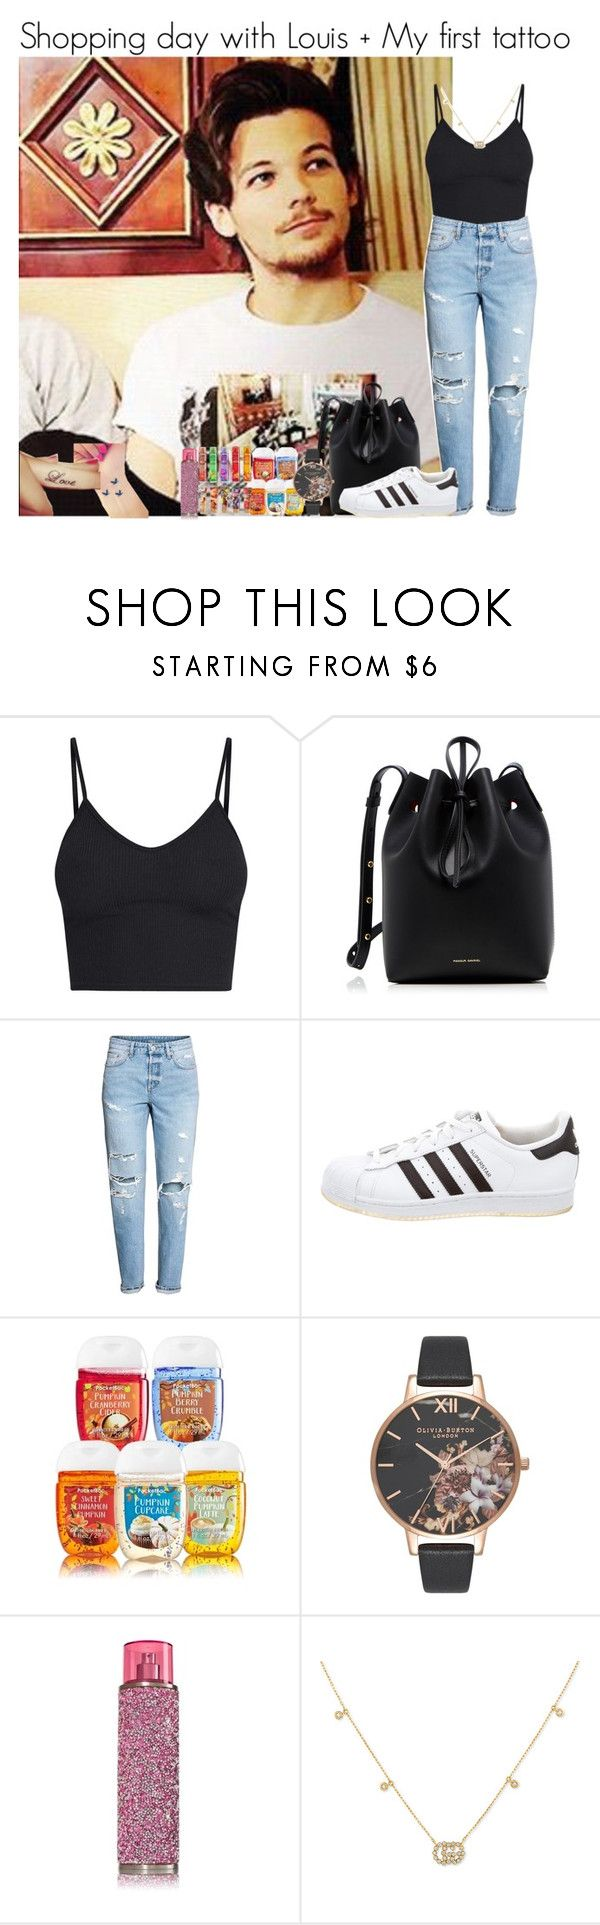 """""""Shopping day with Louis + my first tattoo"""" by louise-smiths ❤ liked on Polyvore featuring Mansur Gavriel, adidas, Olivia Burton and Gucci"""